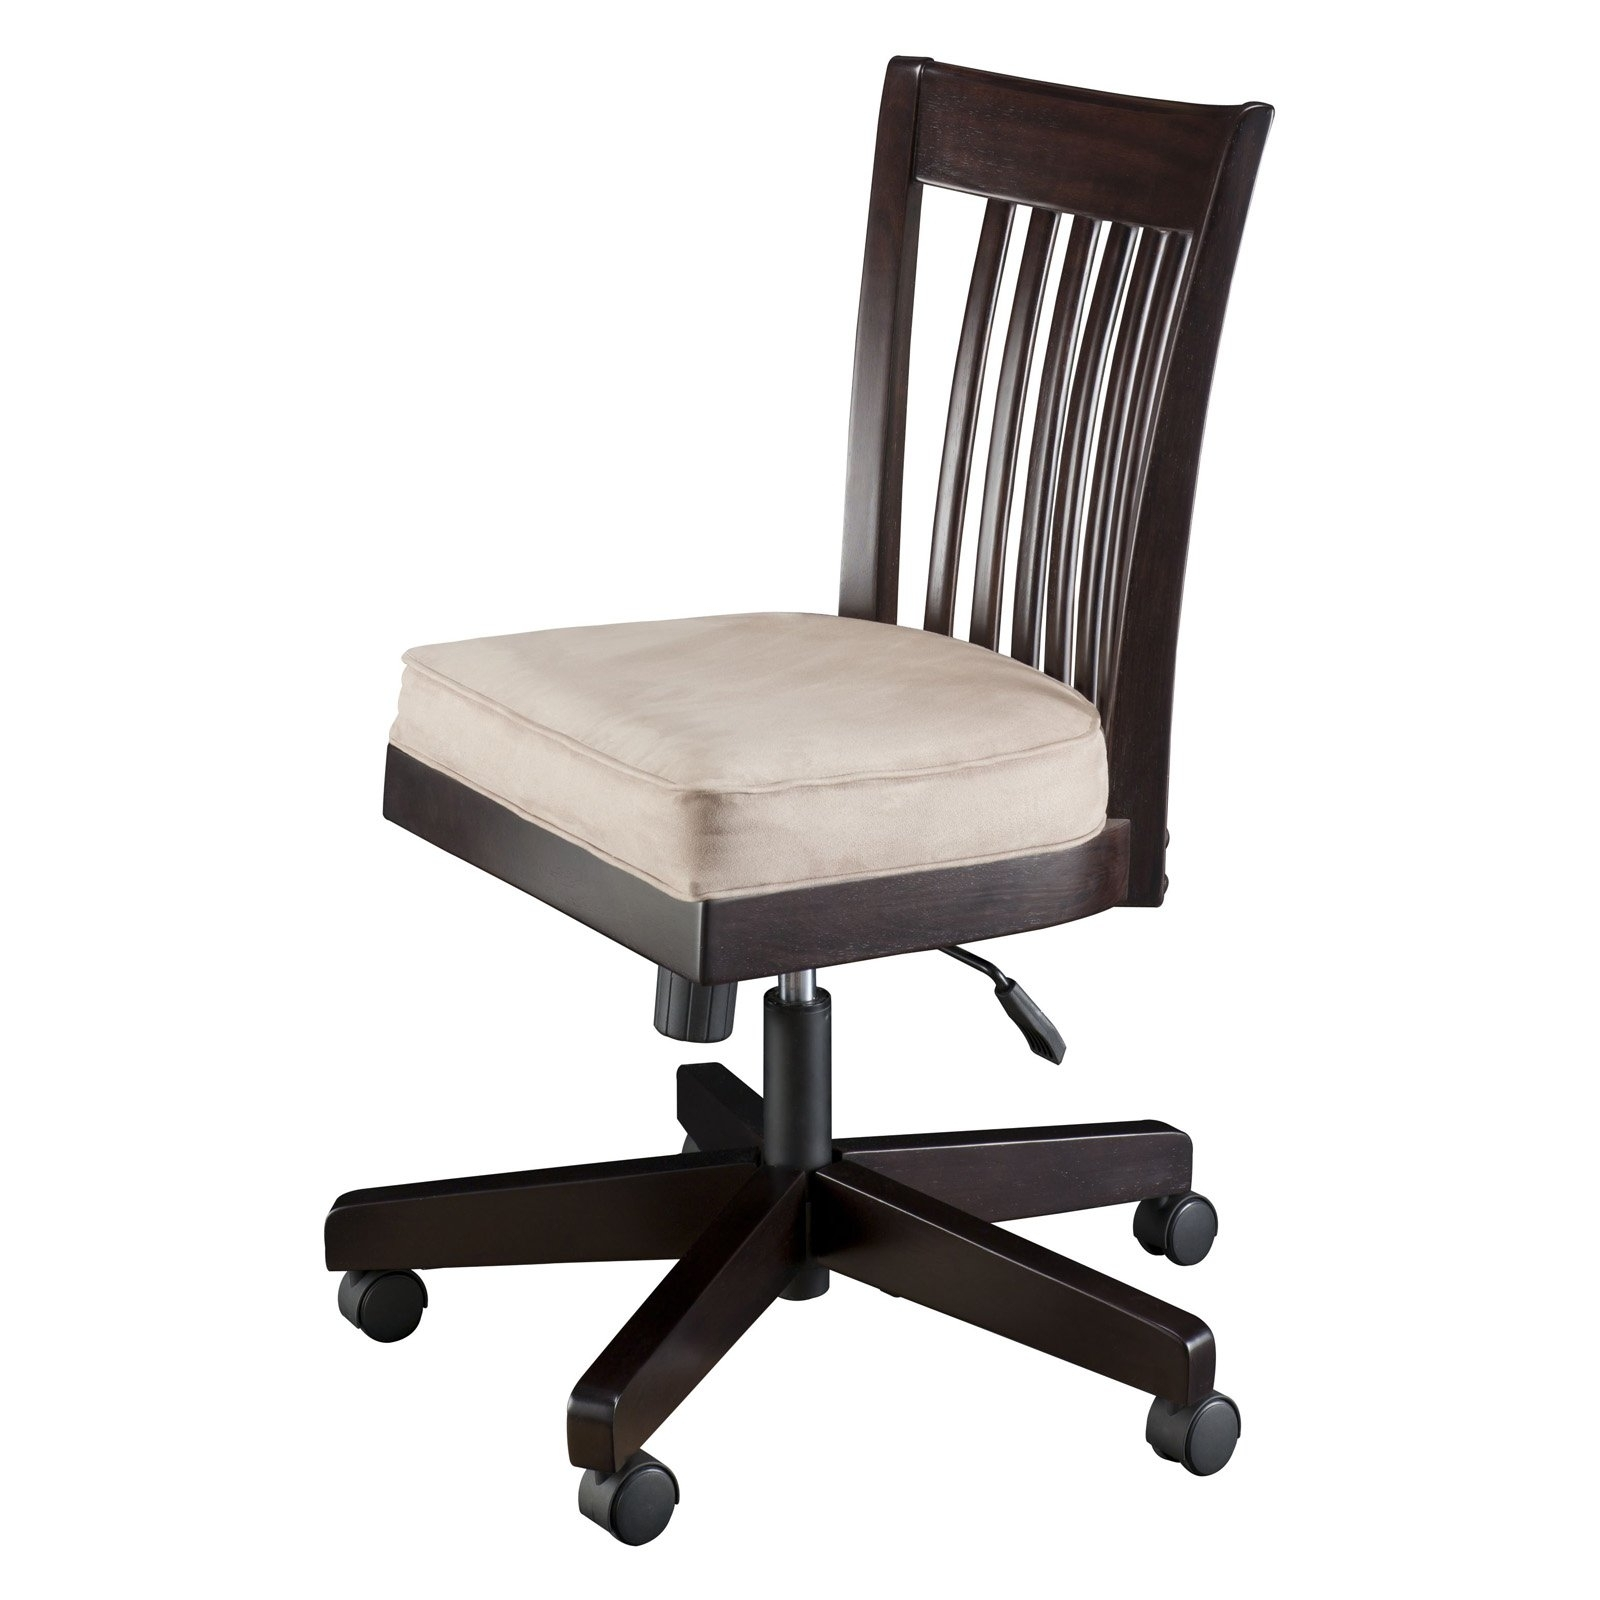 Preferred Executive Office Chairs Without Arms Intended For Furniture (View 16 of 20)